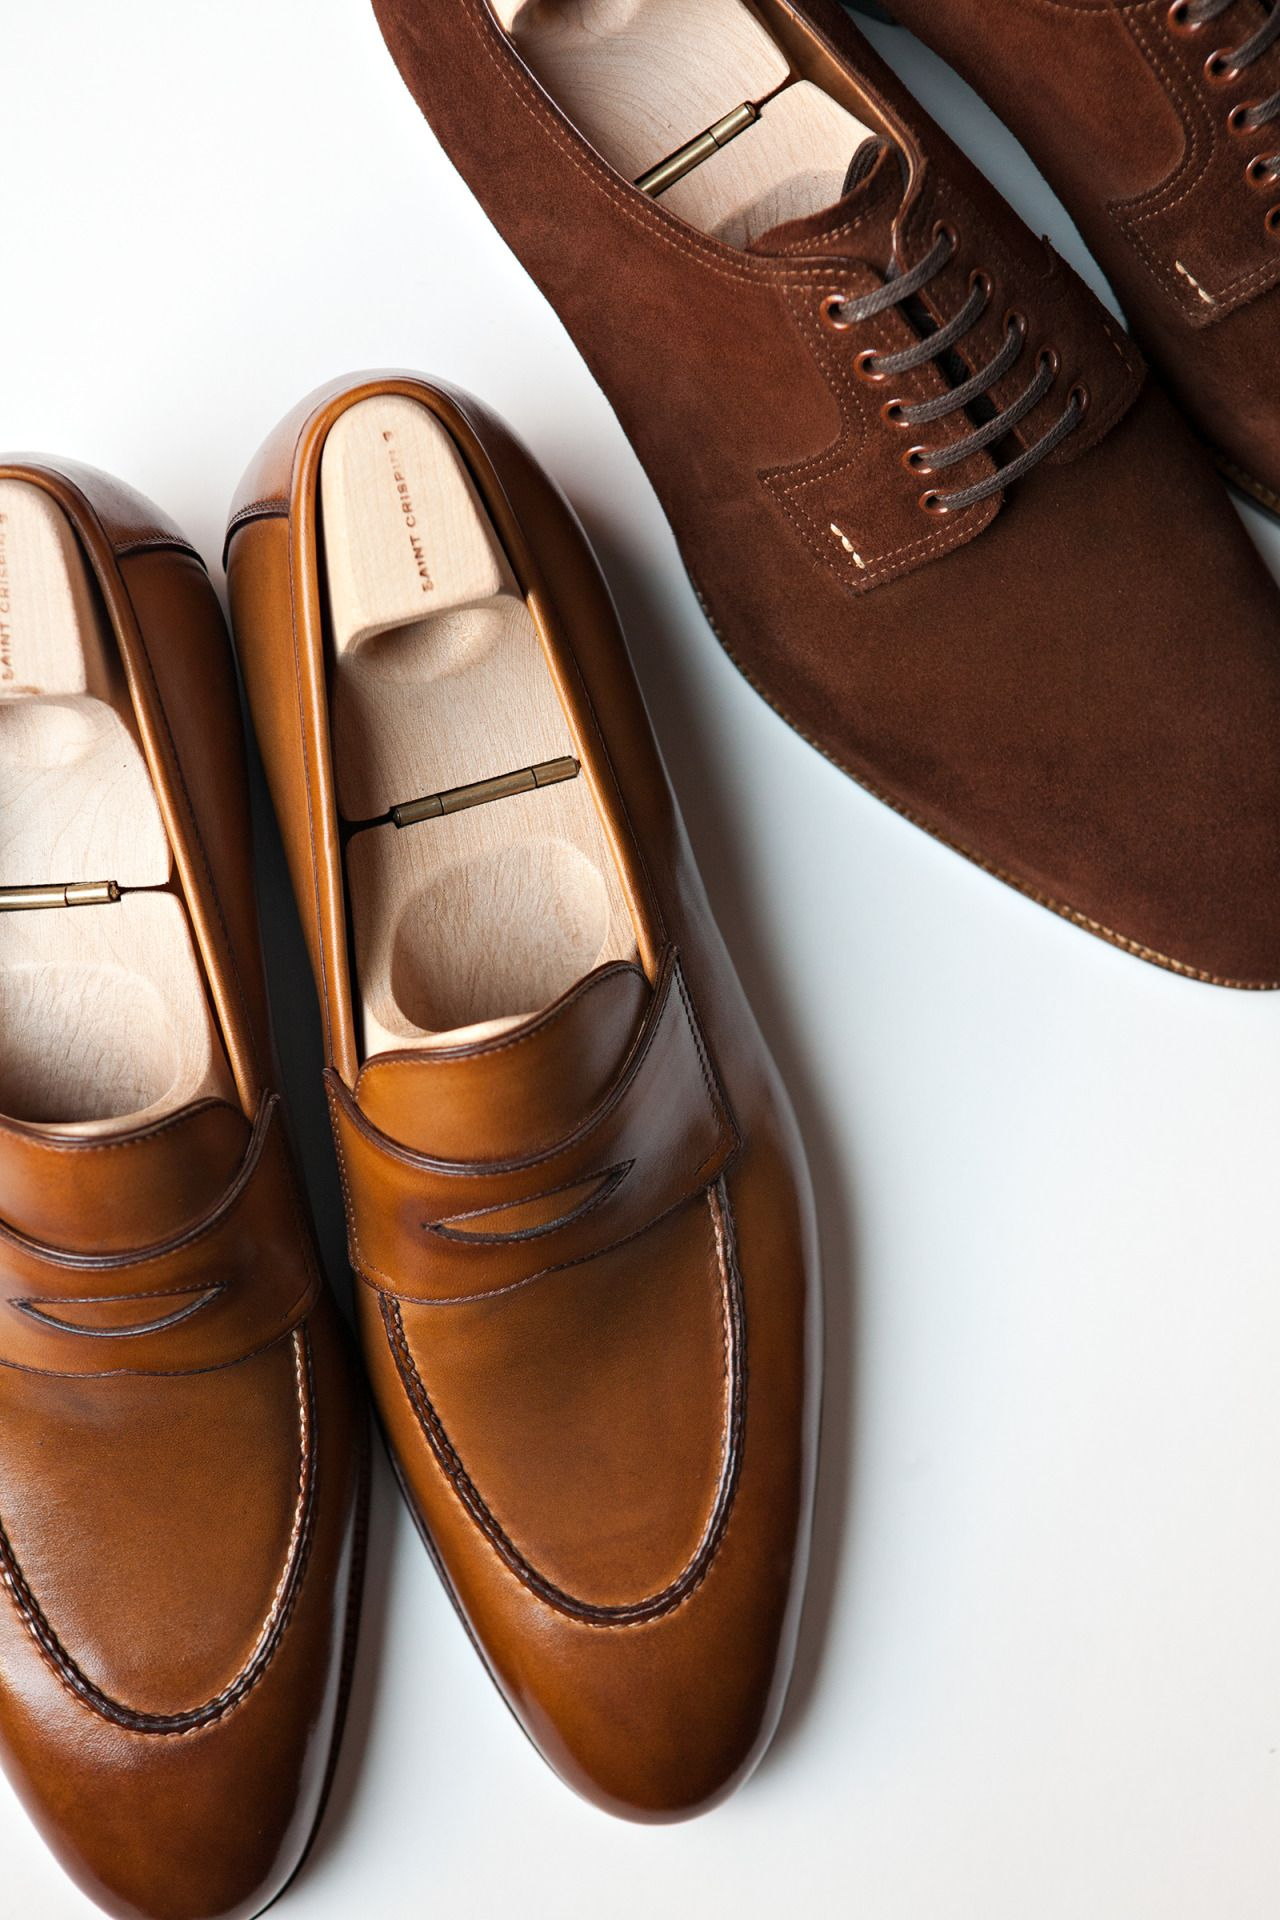 bfcb95e7cee Saint Crispin s 539 and 520 Two gorgeous shoes